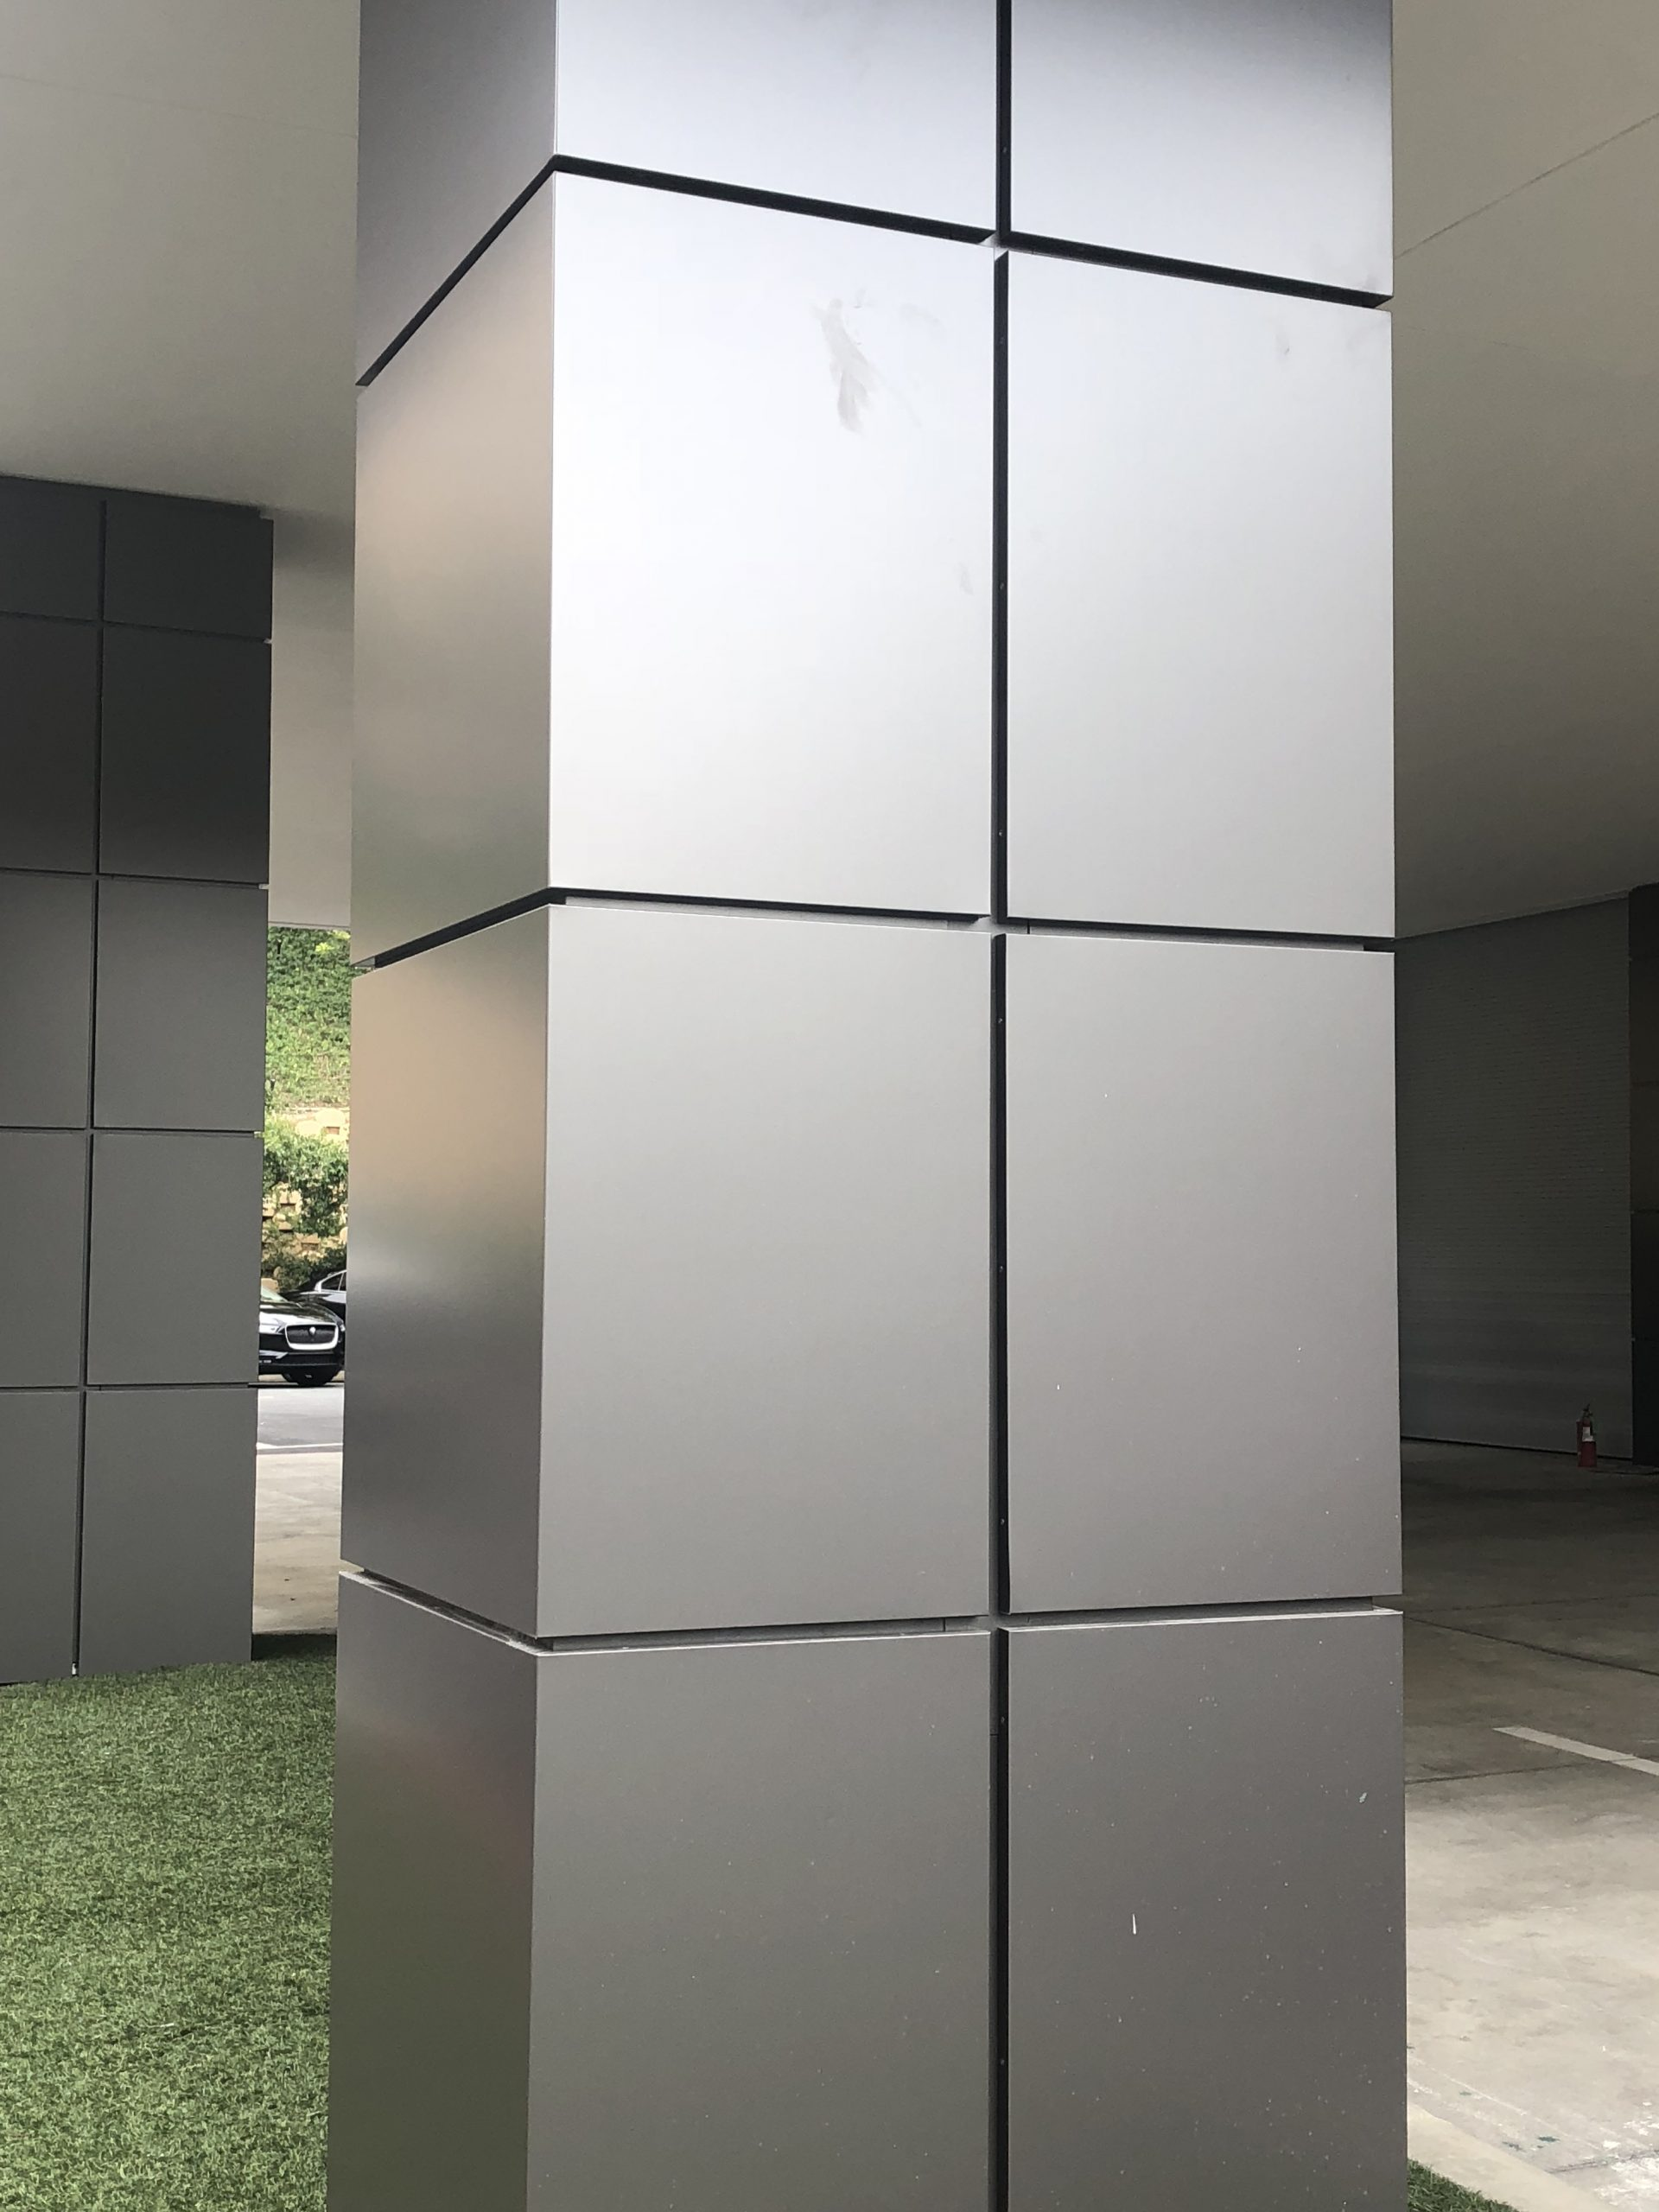 Ticlad Titanium walls and wall panels